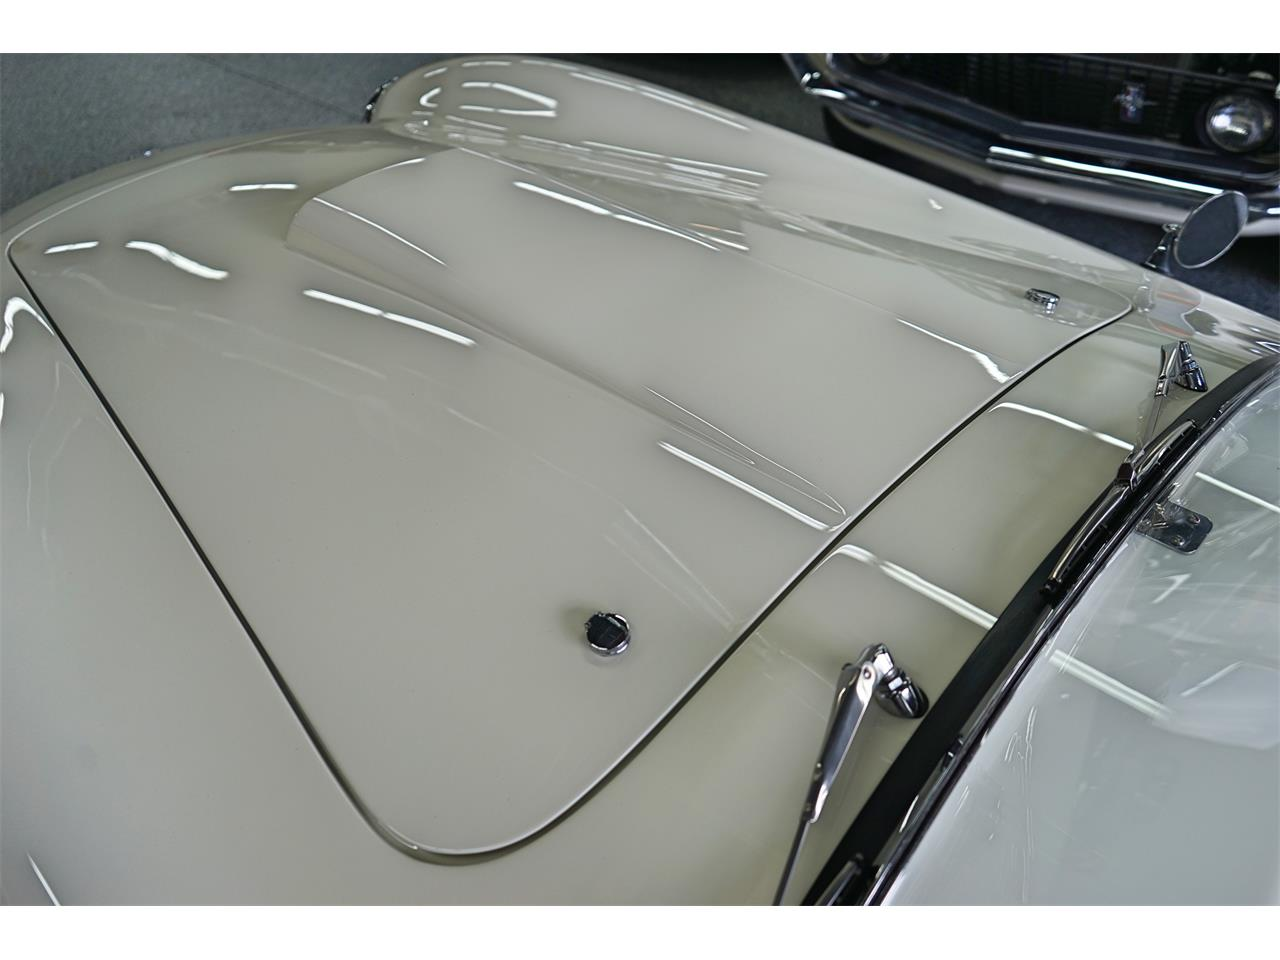 Large Picture of 1956 AC Cobra located in Boise Idaho - $499,995.00 Offered by a Private Seller - O83G